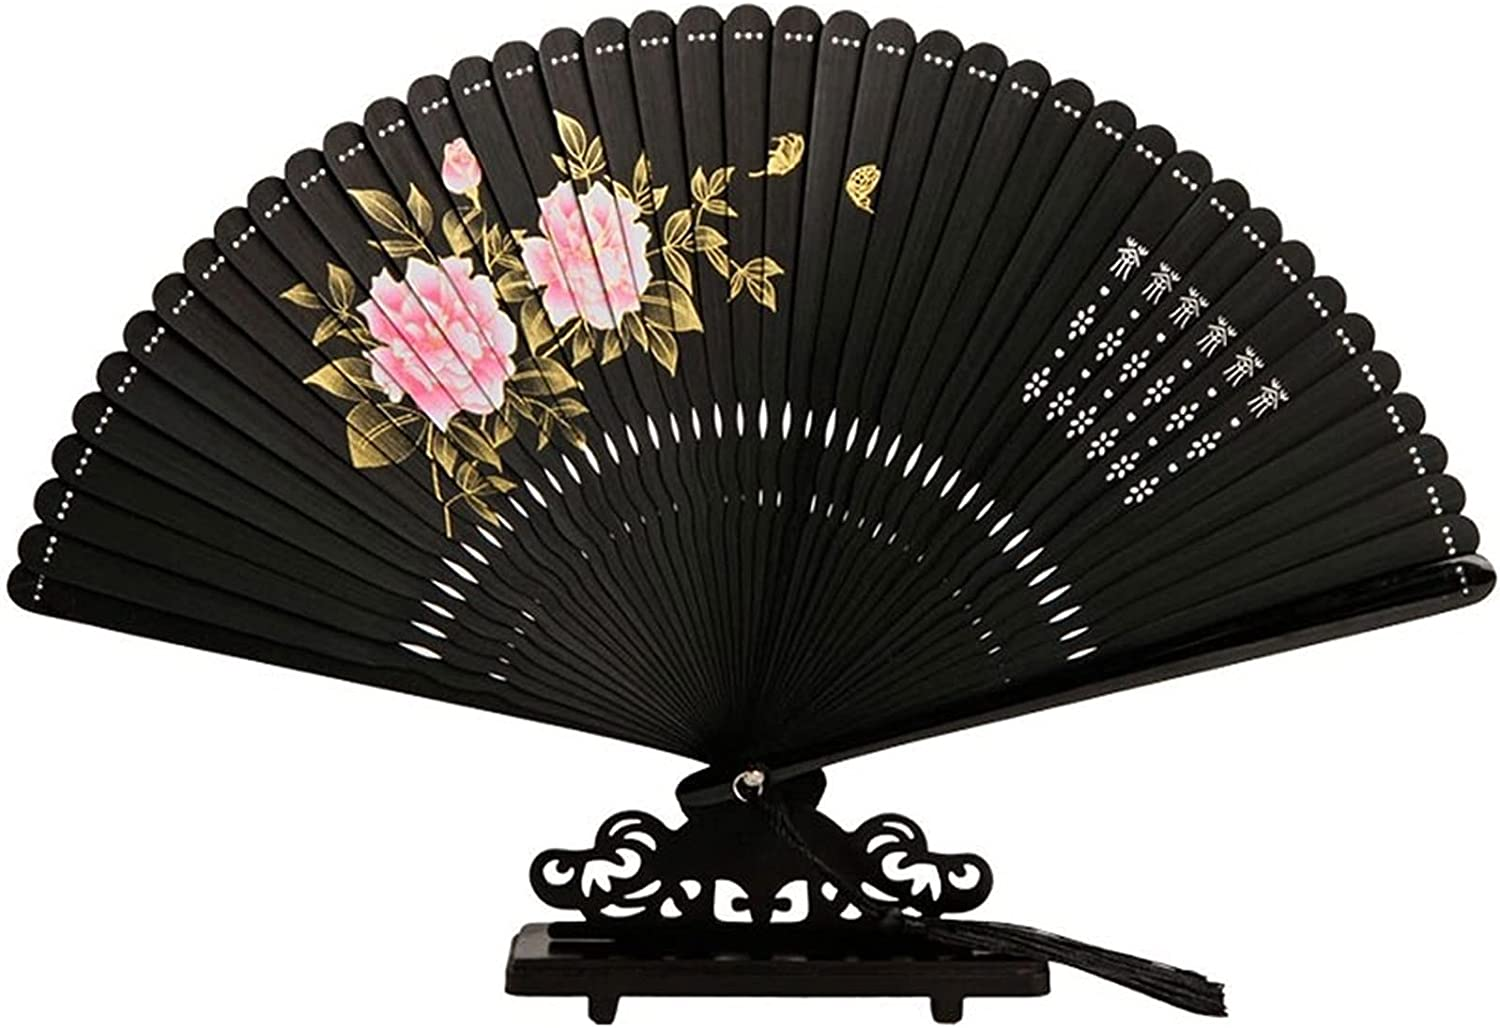 YUXINYAN 70% OFF Outlet Hand Fans Chinese Style Full Atlanta Mall Ms. Ancient Fan Bamboo Sty